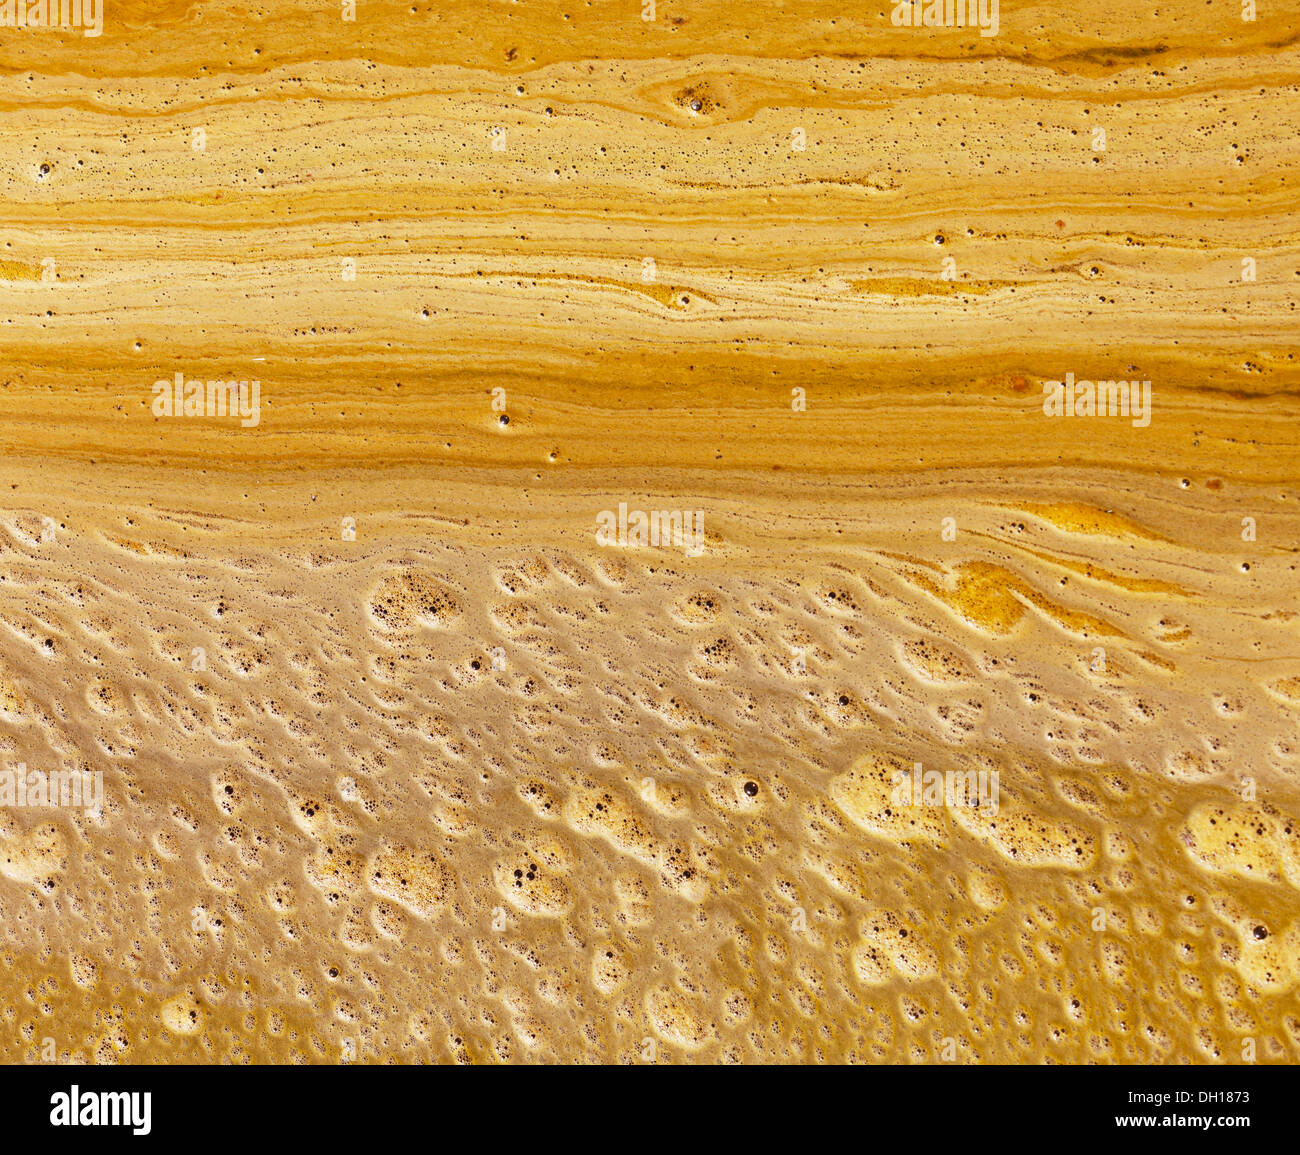 The yellow scum on the surface of dirty water - background - Stock Image